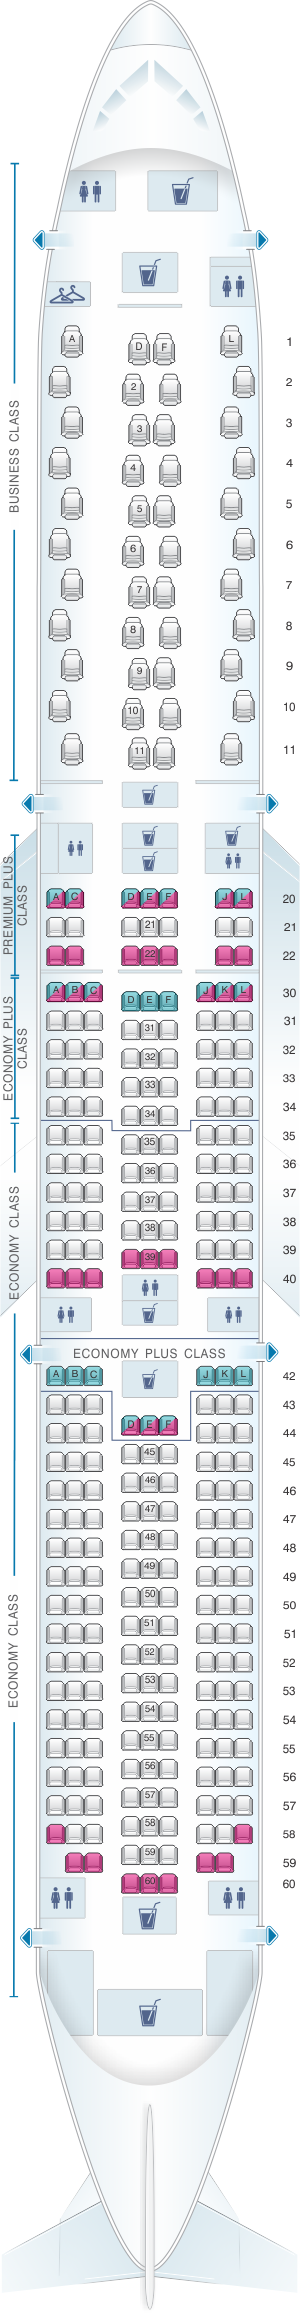 Seat map for United Airlines Boeing B787 10